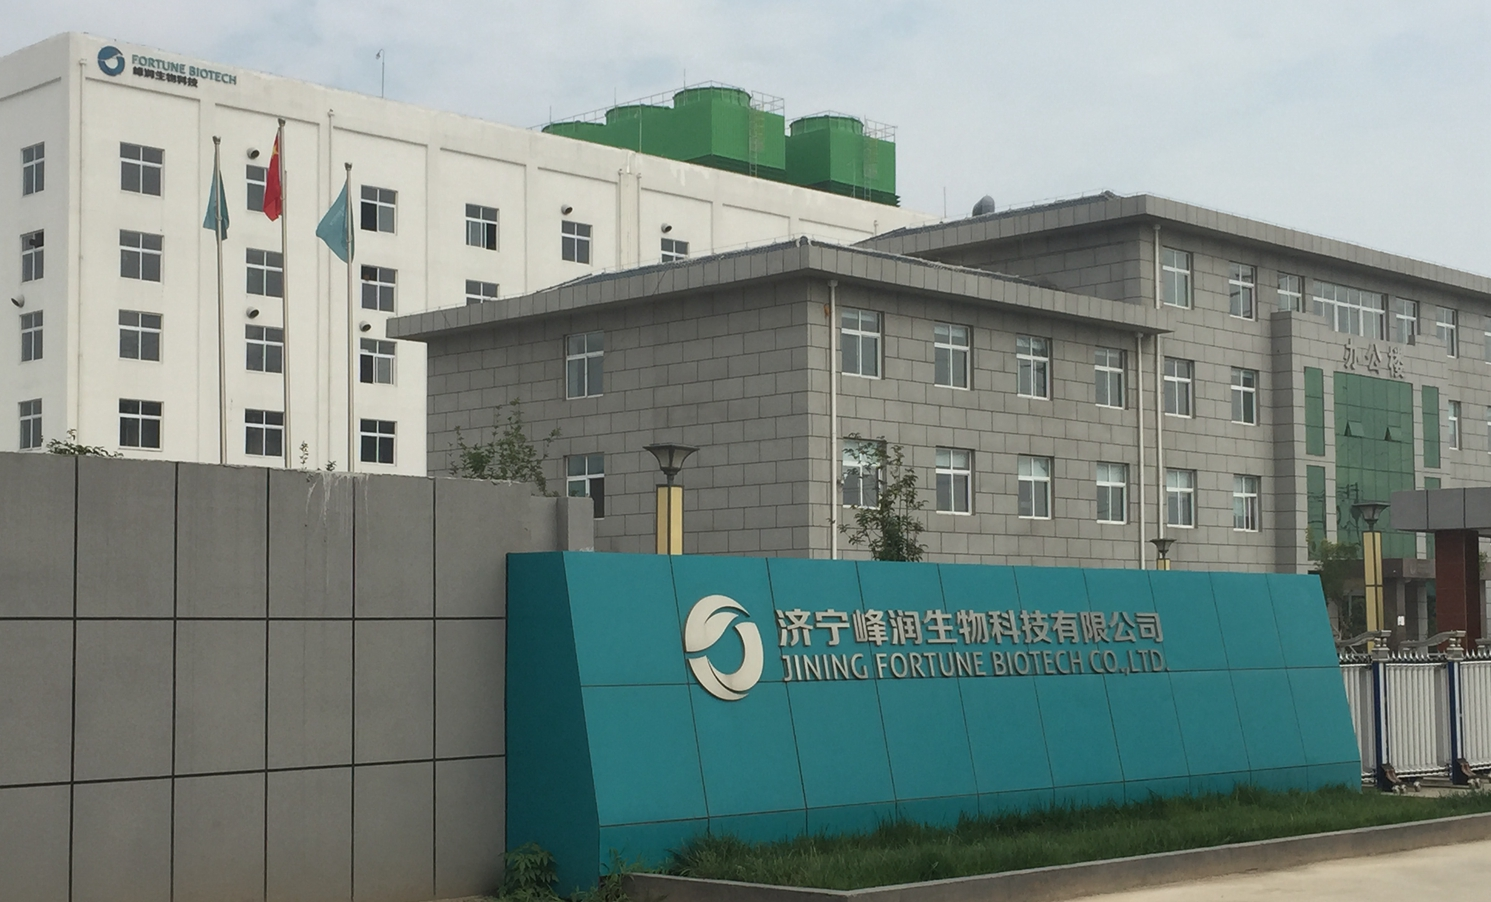 Jining Fortune Biotech Co.,Ltd. Main Image